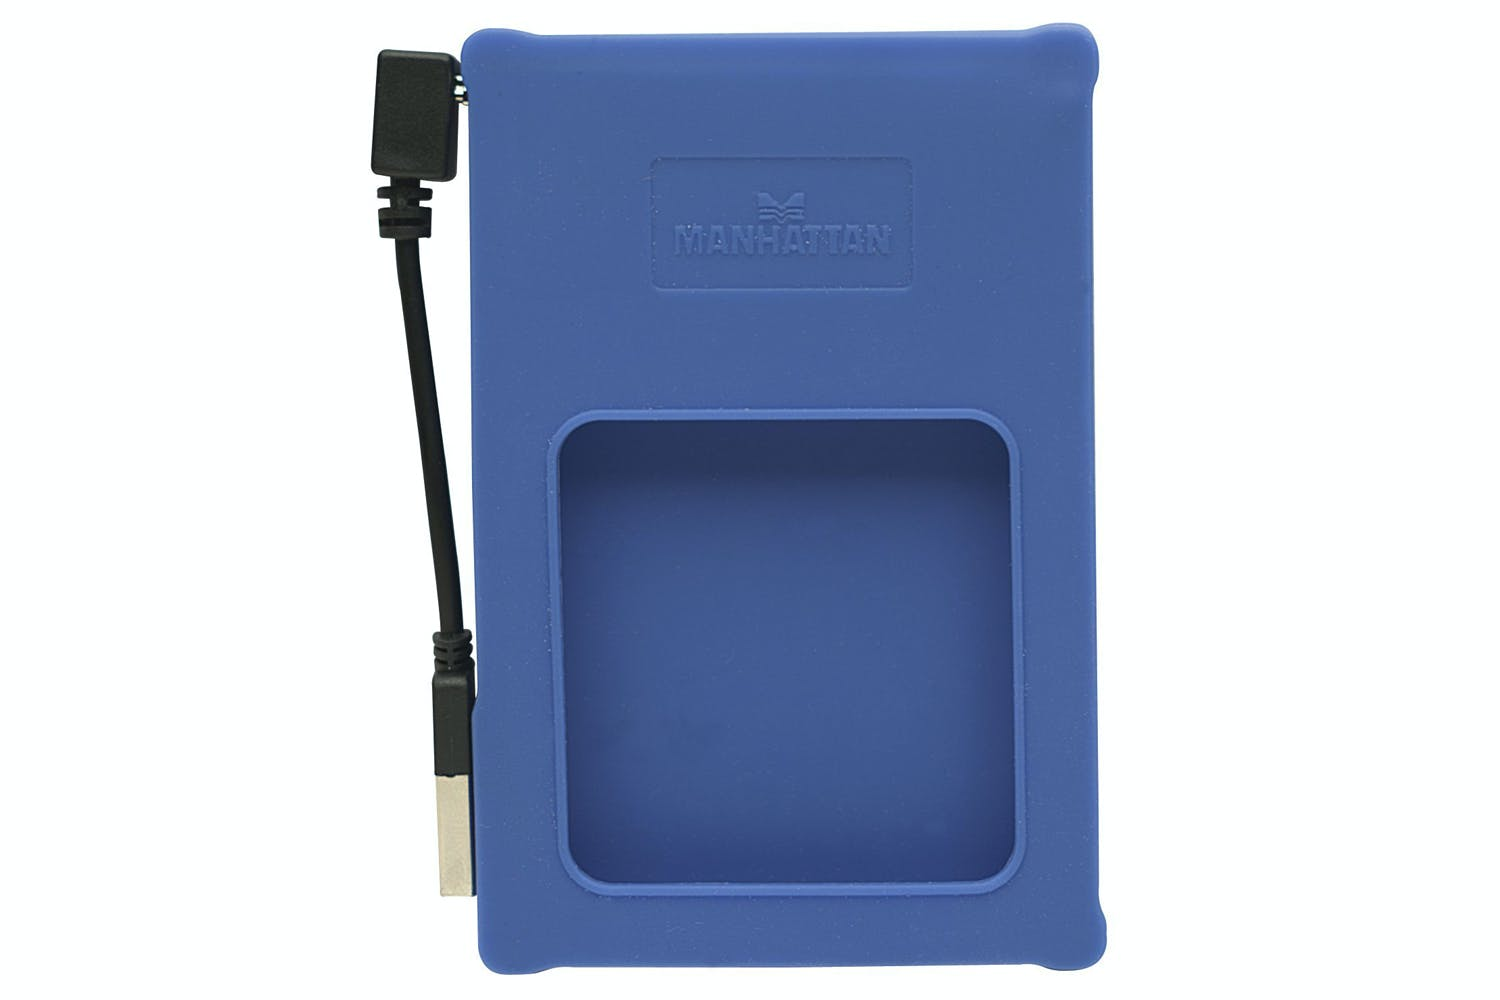 Manhattan External Enclosure Hi-Speed USB 2.0 Blue